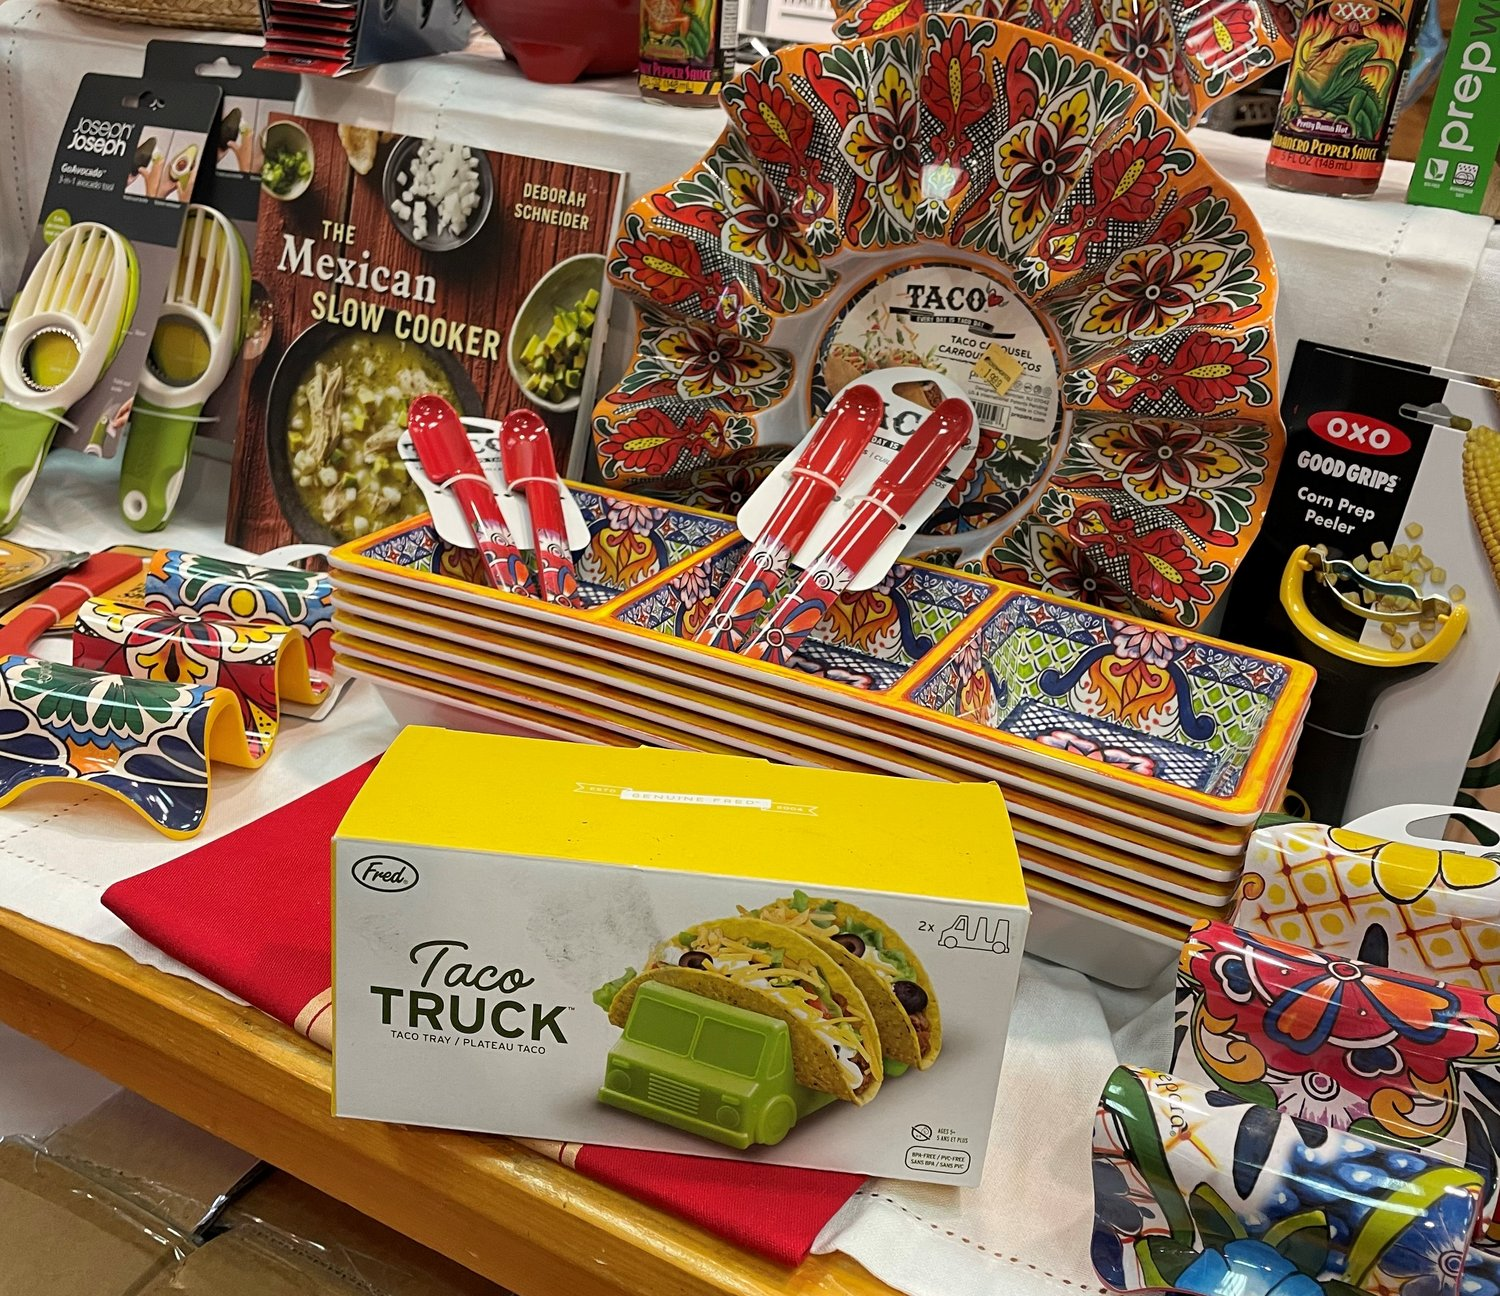 The Fred Taco Truck and the taco accessories table at Kitchen Kapers is a hot section of the store right now.